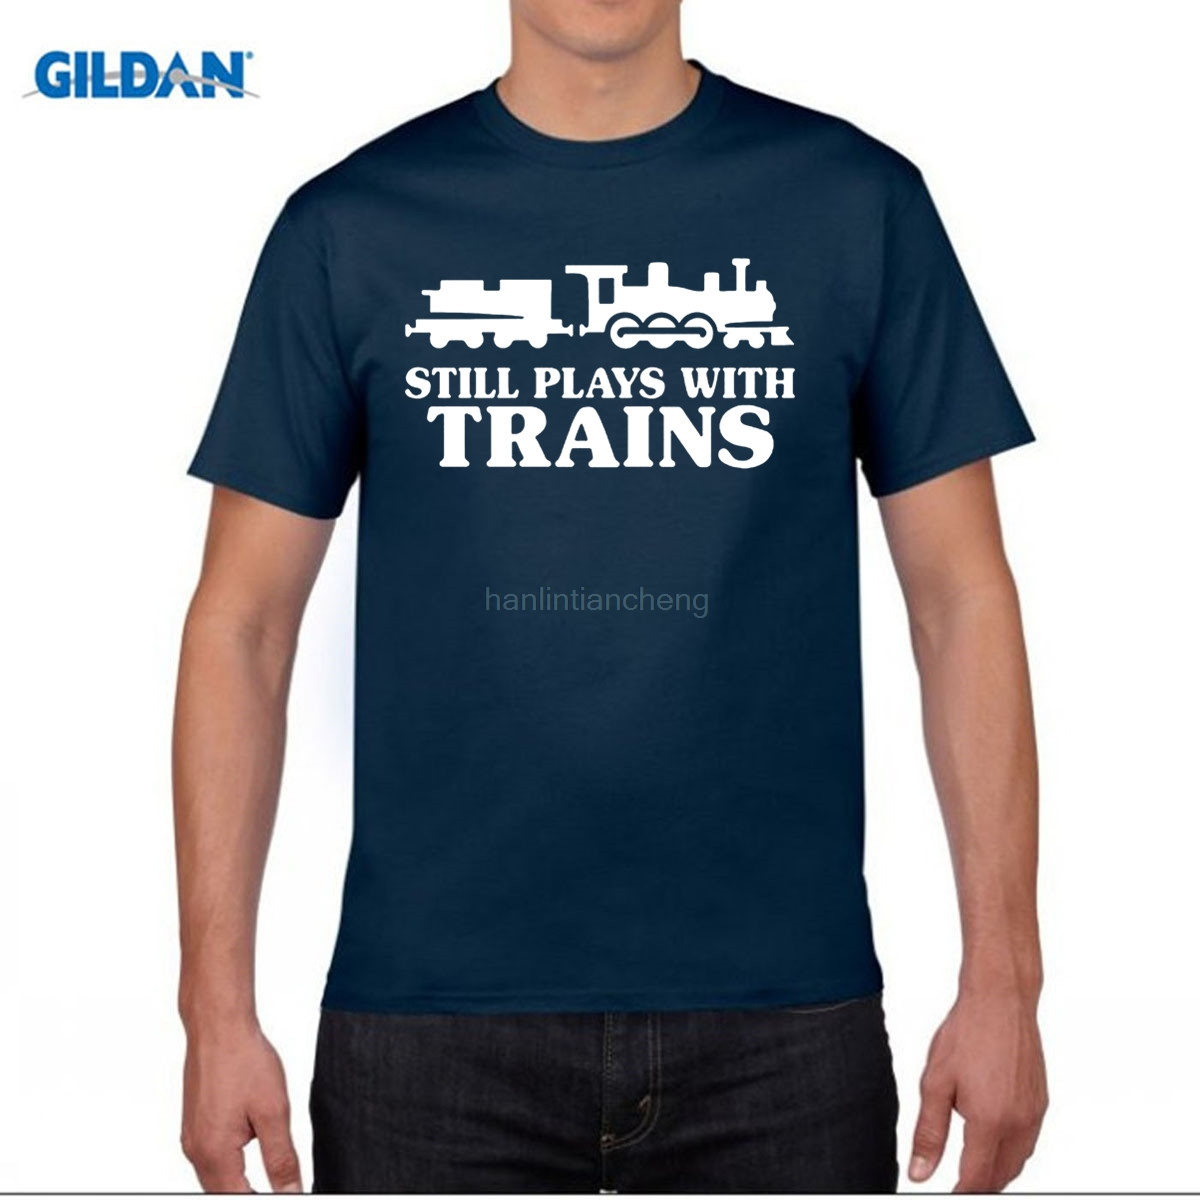 GILDAN round collar T-shirt New Summer Style Still Plays With Trains T-shirt Funny Railway Train Driver Comedy Gift T Shirt